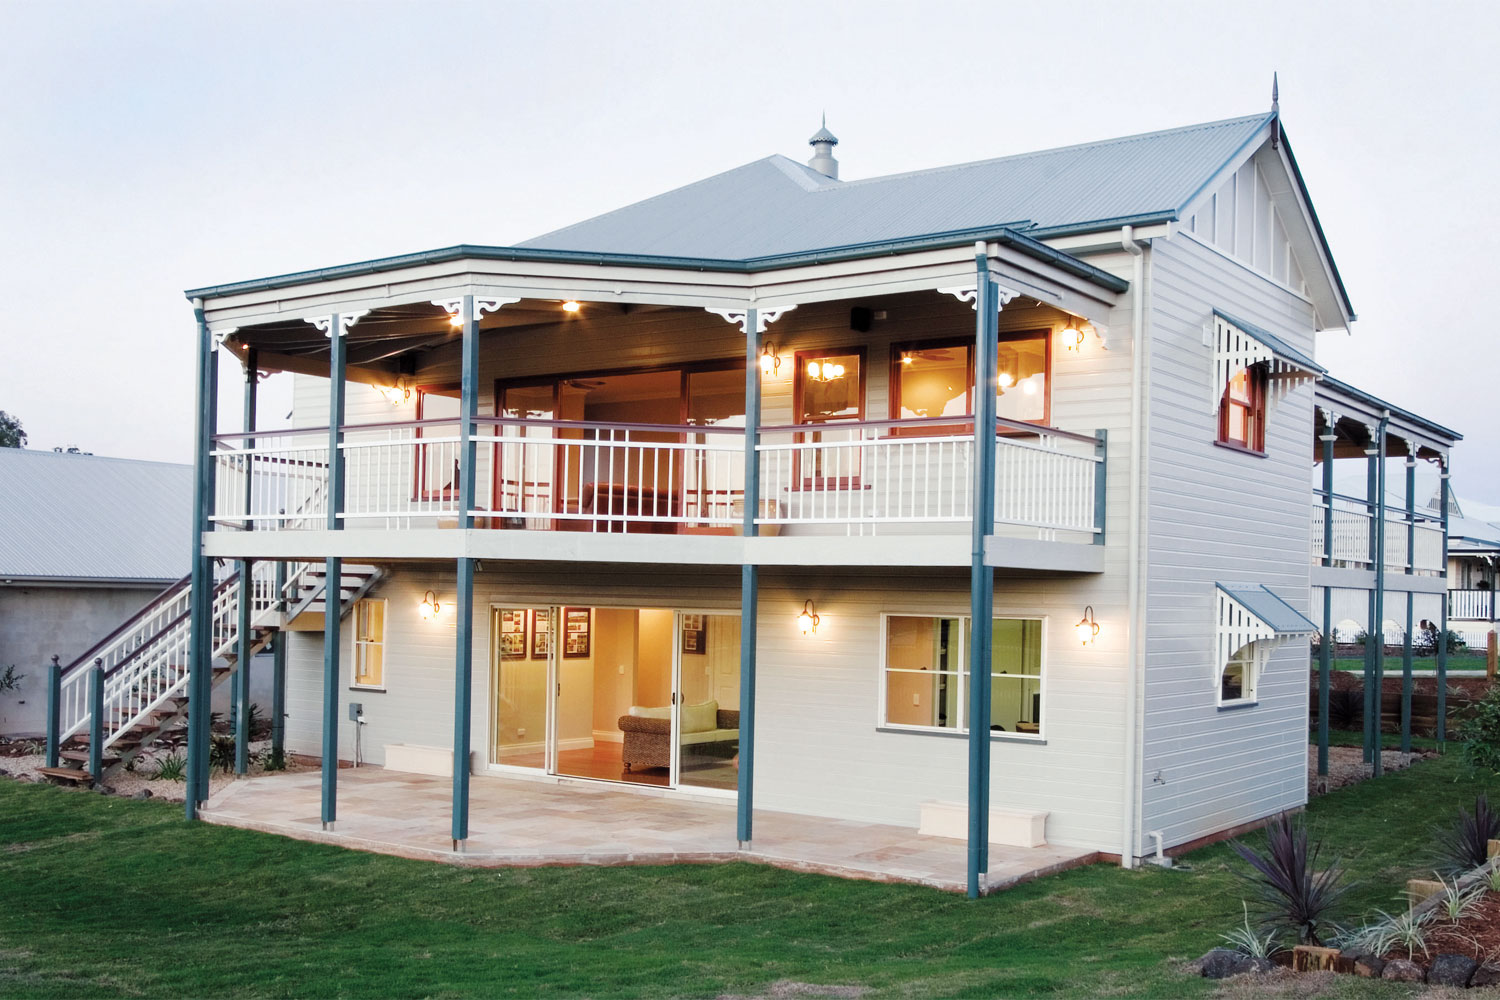 At home with heritage: classic Queenslander design - Completehome